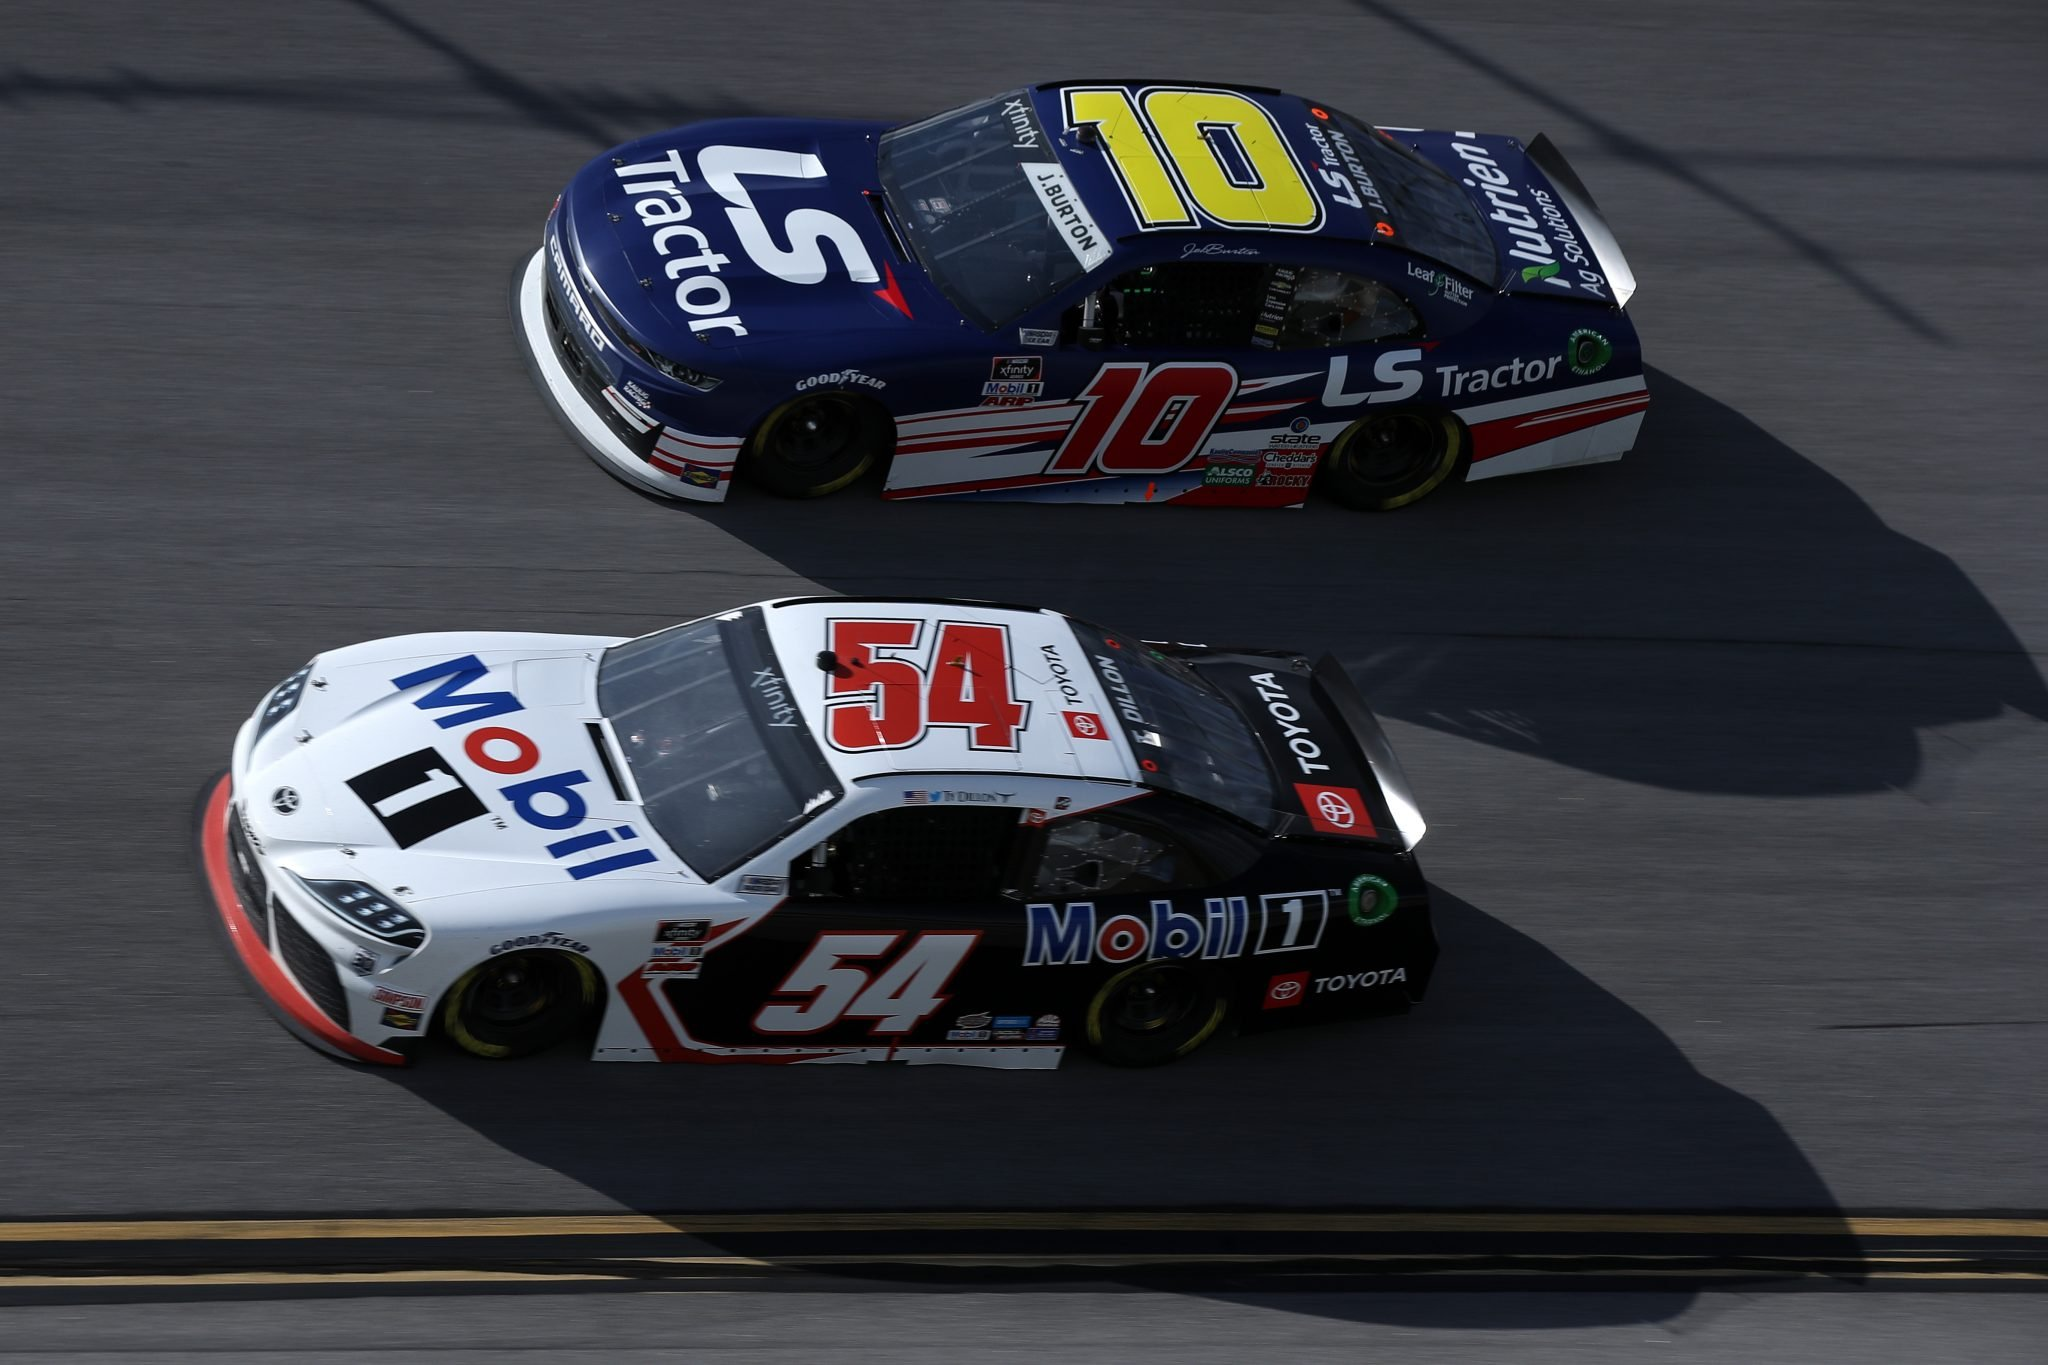 TALLADEGA, ALABAMA - APRIL 24: Ty Dillon, driver of the #54 Mobil 1 Toyota, and Jeb Burton, driver of the #10 LS Tractors Chevrolet, race during the NASCAR Xfinity Series Ag-Pro 300 at Talladega Superspeedway on April 24, 2021 in Talladega, Alabama. (Photo by Sean Gardner/Getty Images) | Getty Images